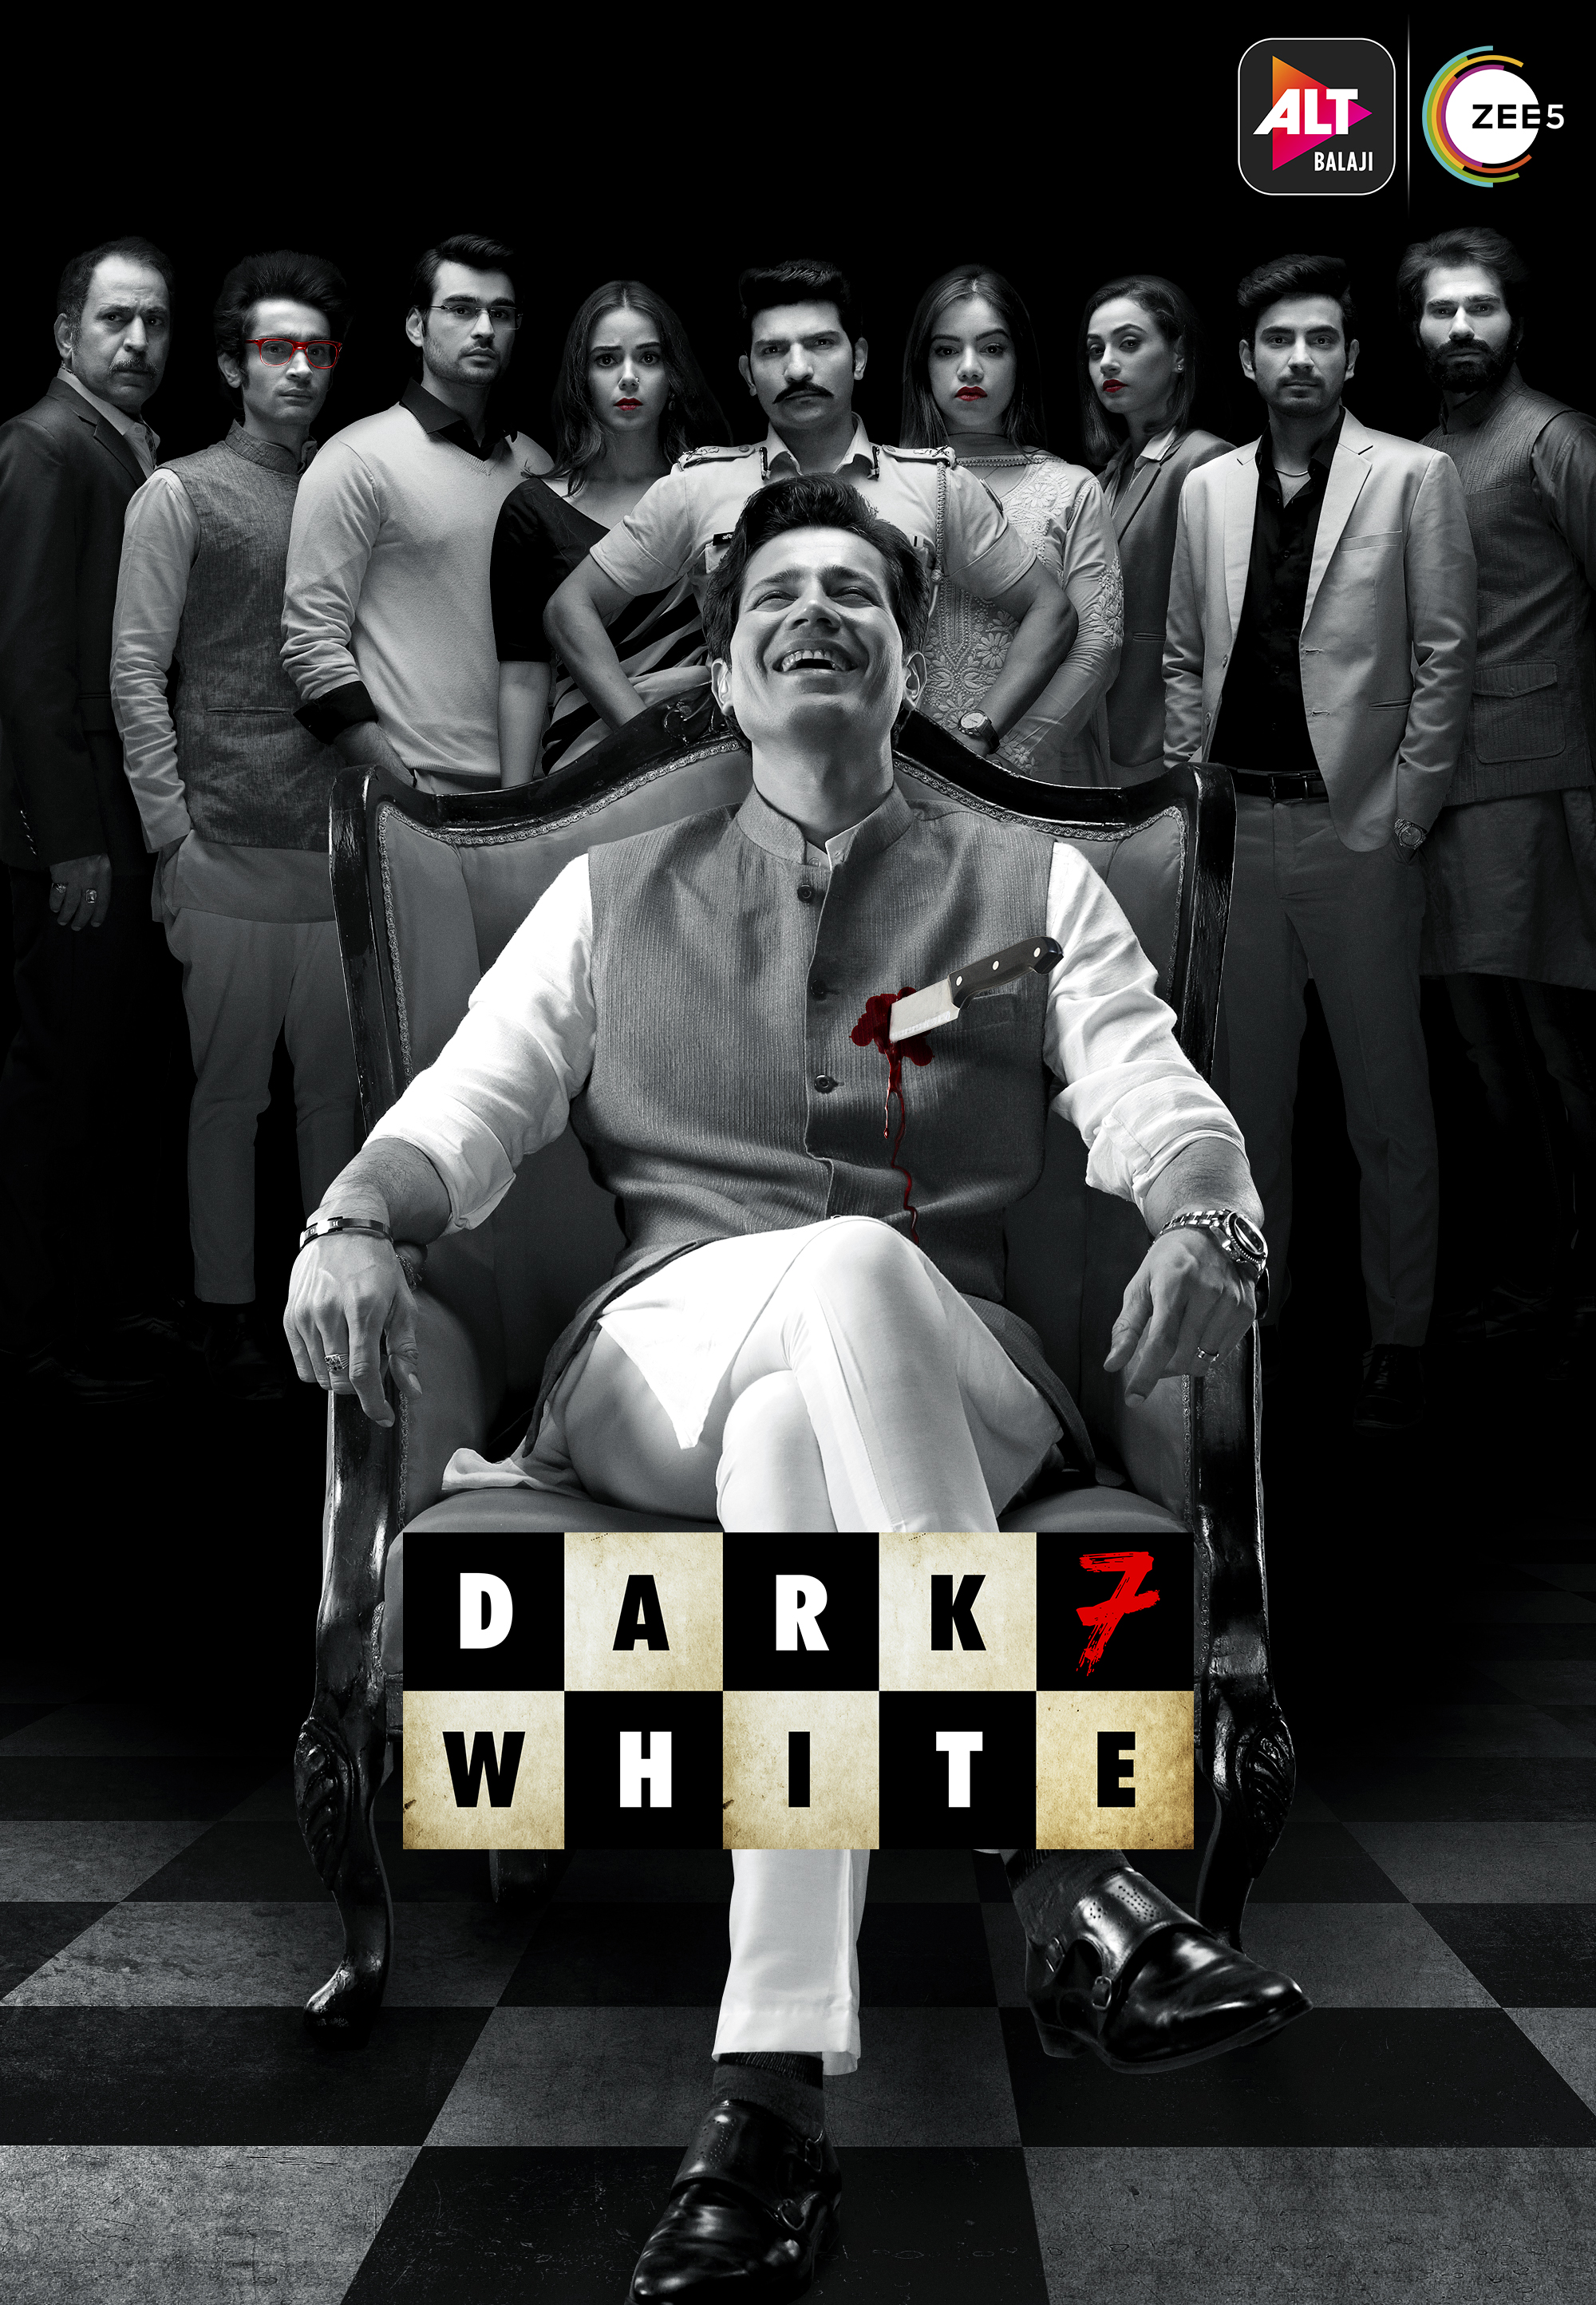 Download Dark 7 White (2020) S01 Hindi Complete ALTBalaji Original Web Series 480p HDRip 600MB